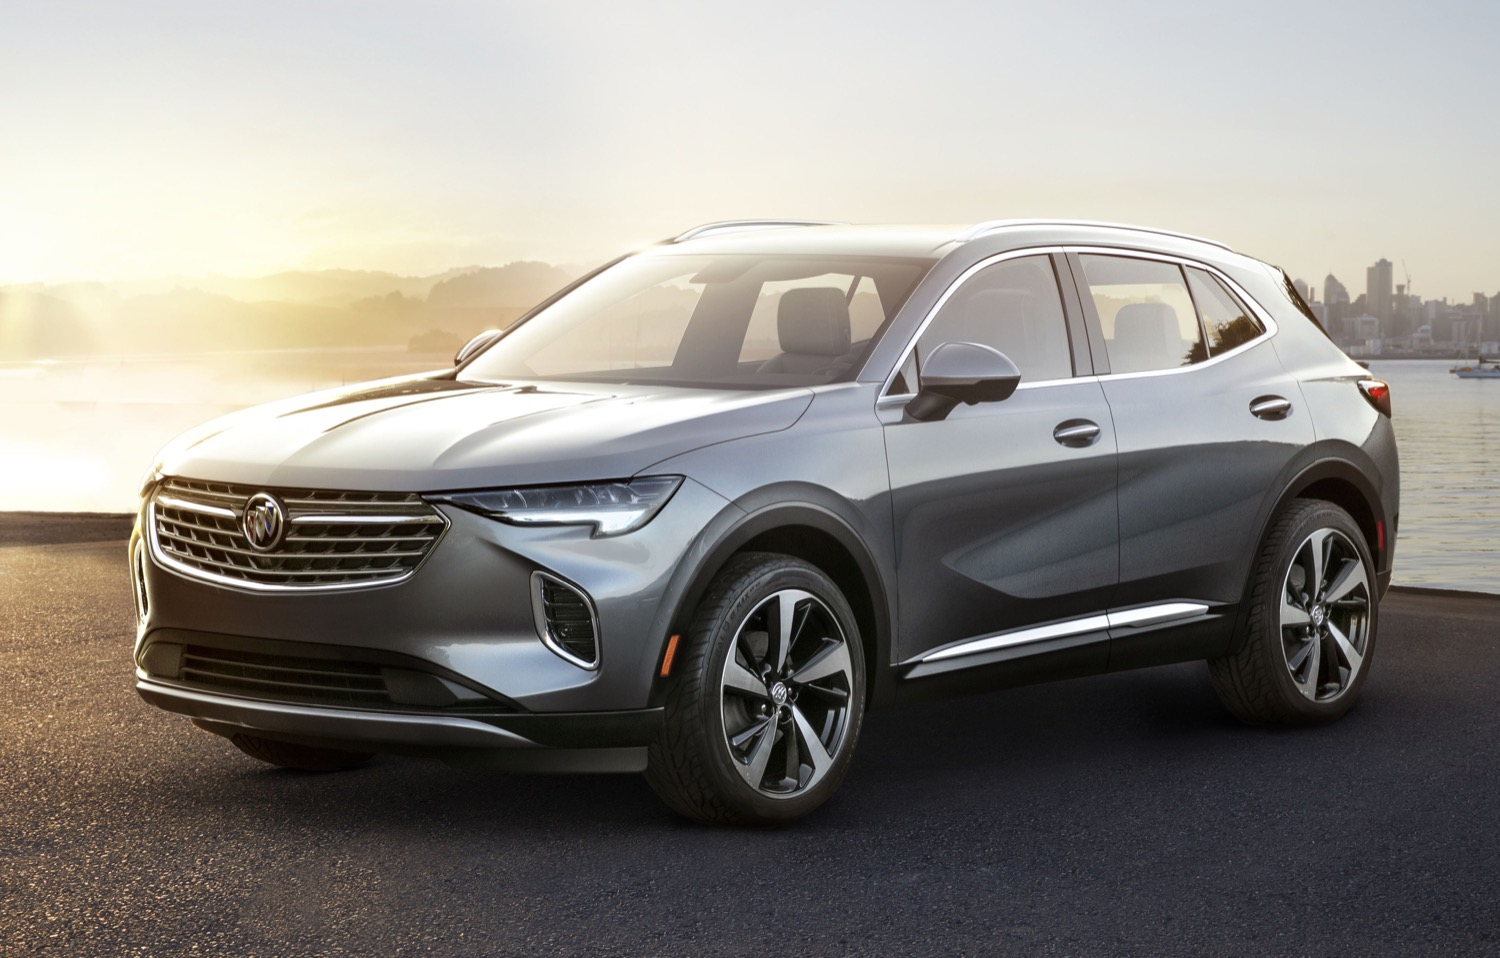 New 2021 Envision Still Built In China | Gm Authority 2022 Buick Envision Problems, Photos, Ratings